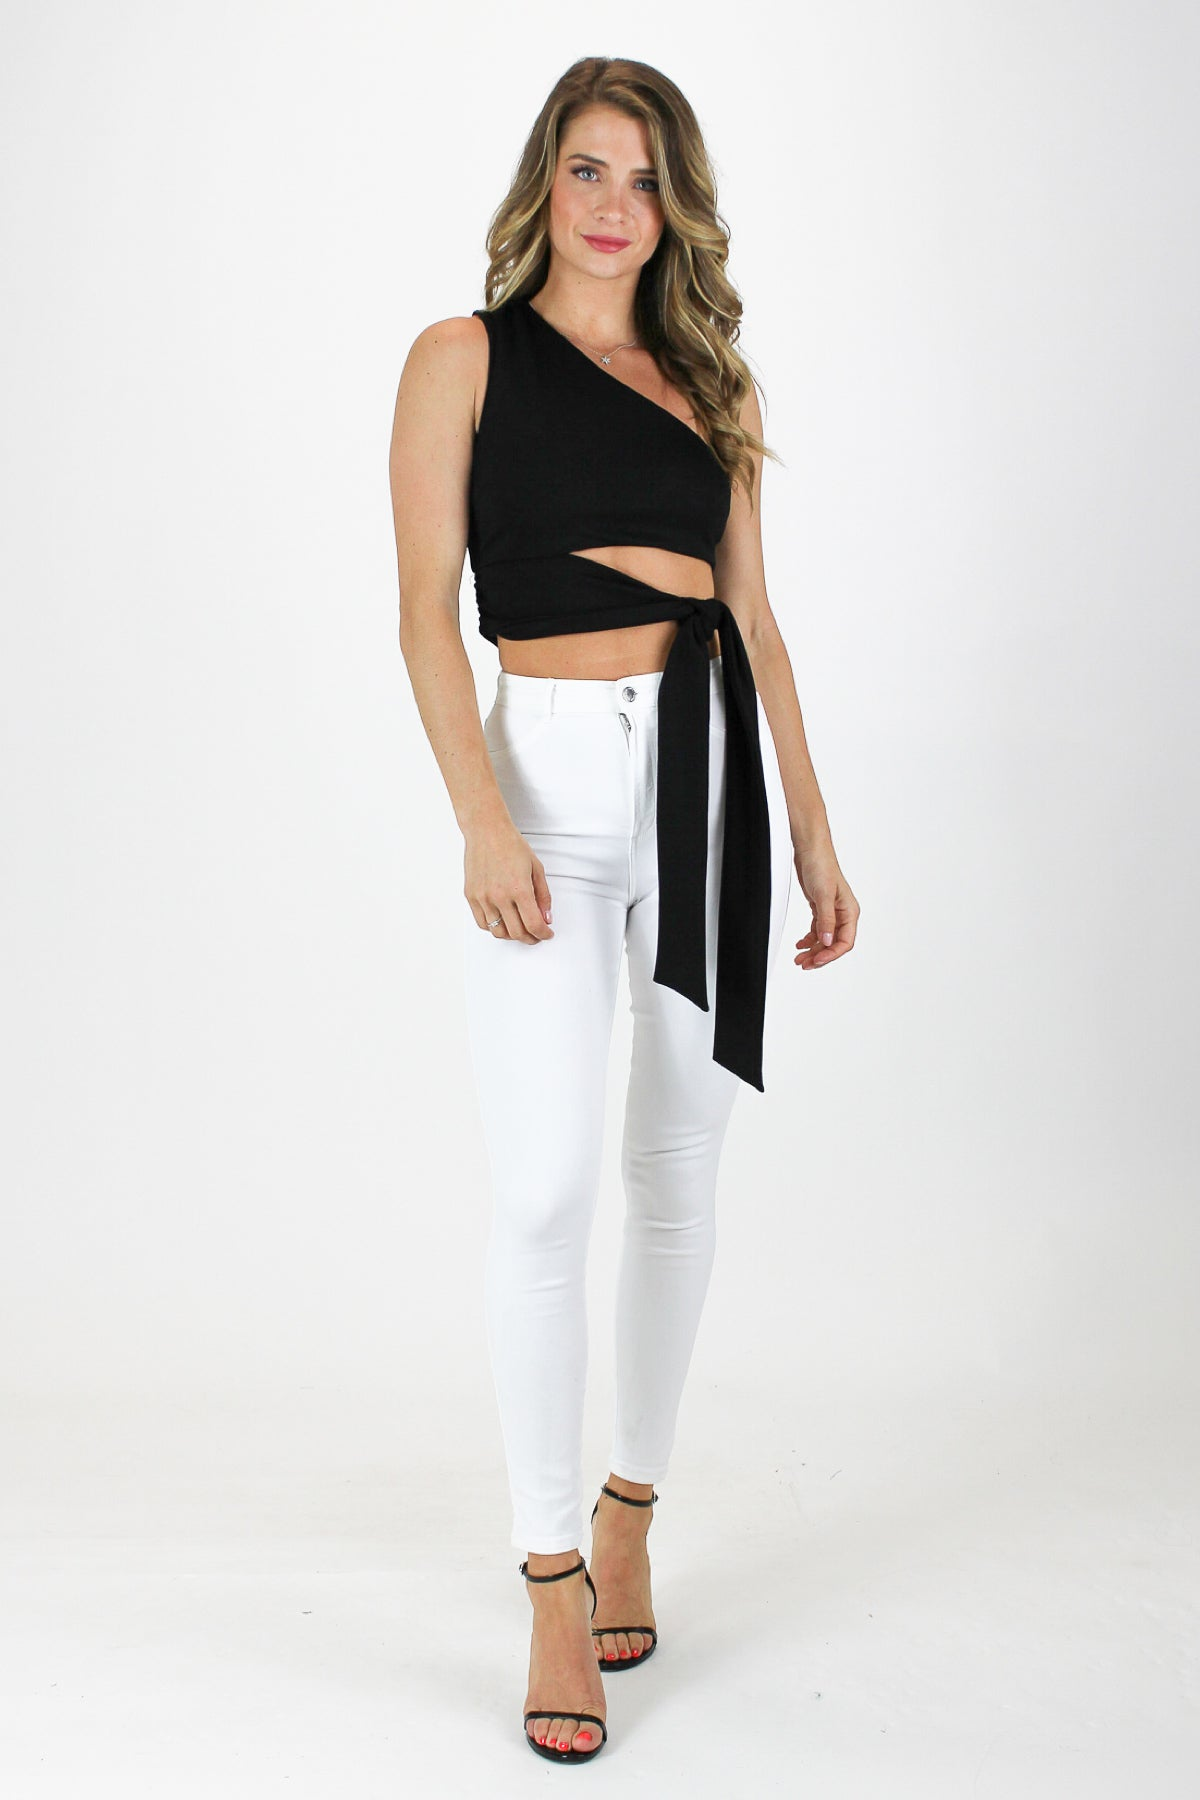 BEST SIDE CROPPED TOP IN BLACK